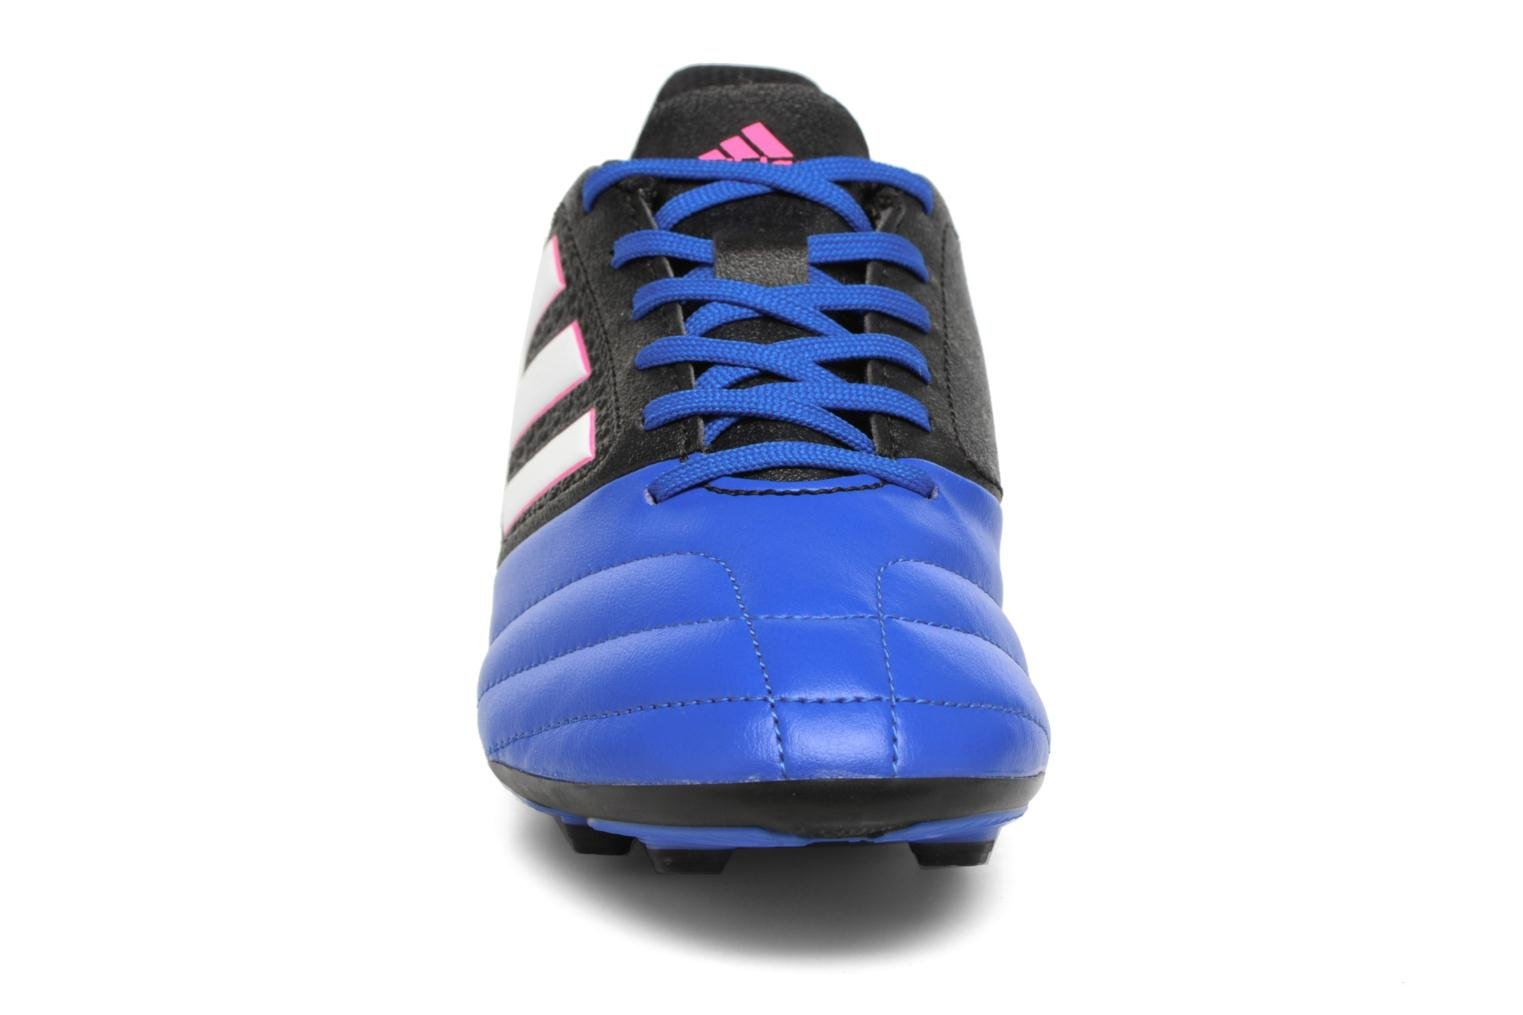 Sportschoenen Adidas Performance Ace 17.4 Fxg J Zwart model